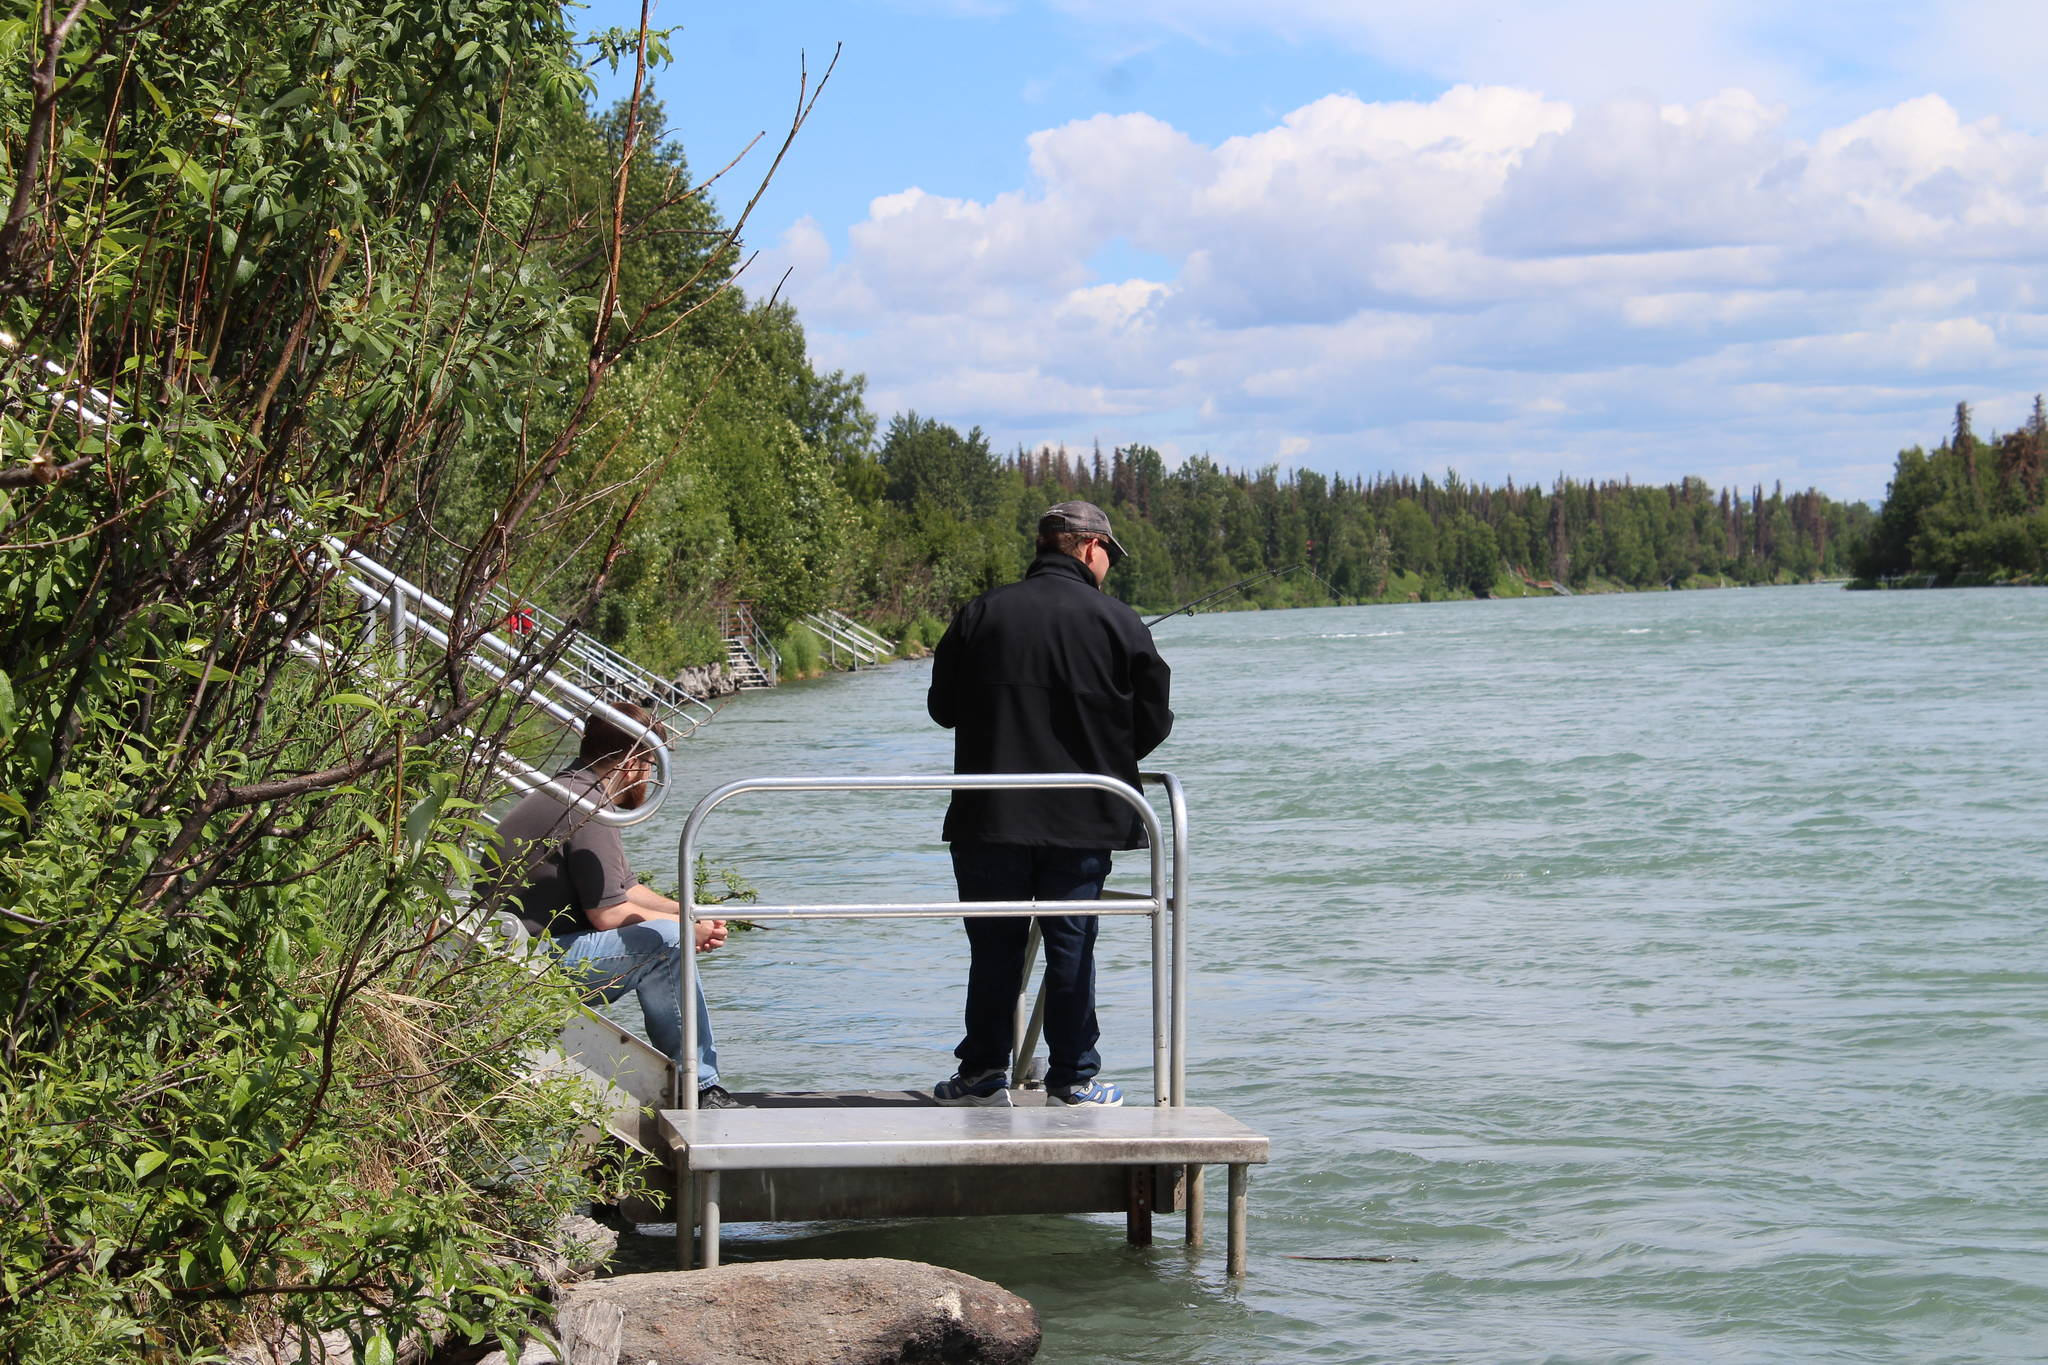 A fisher holds a reel on the Kenai River near Soldotna on June 30, 2021. (Photo by Ashlyn O'Hara/Peninsula Clarion)